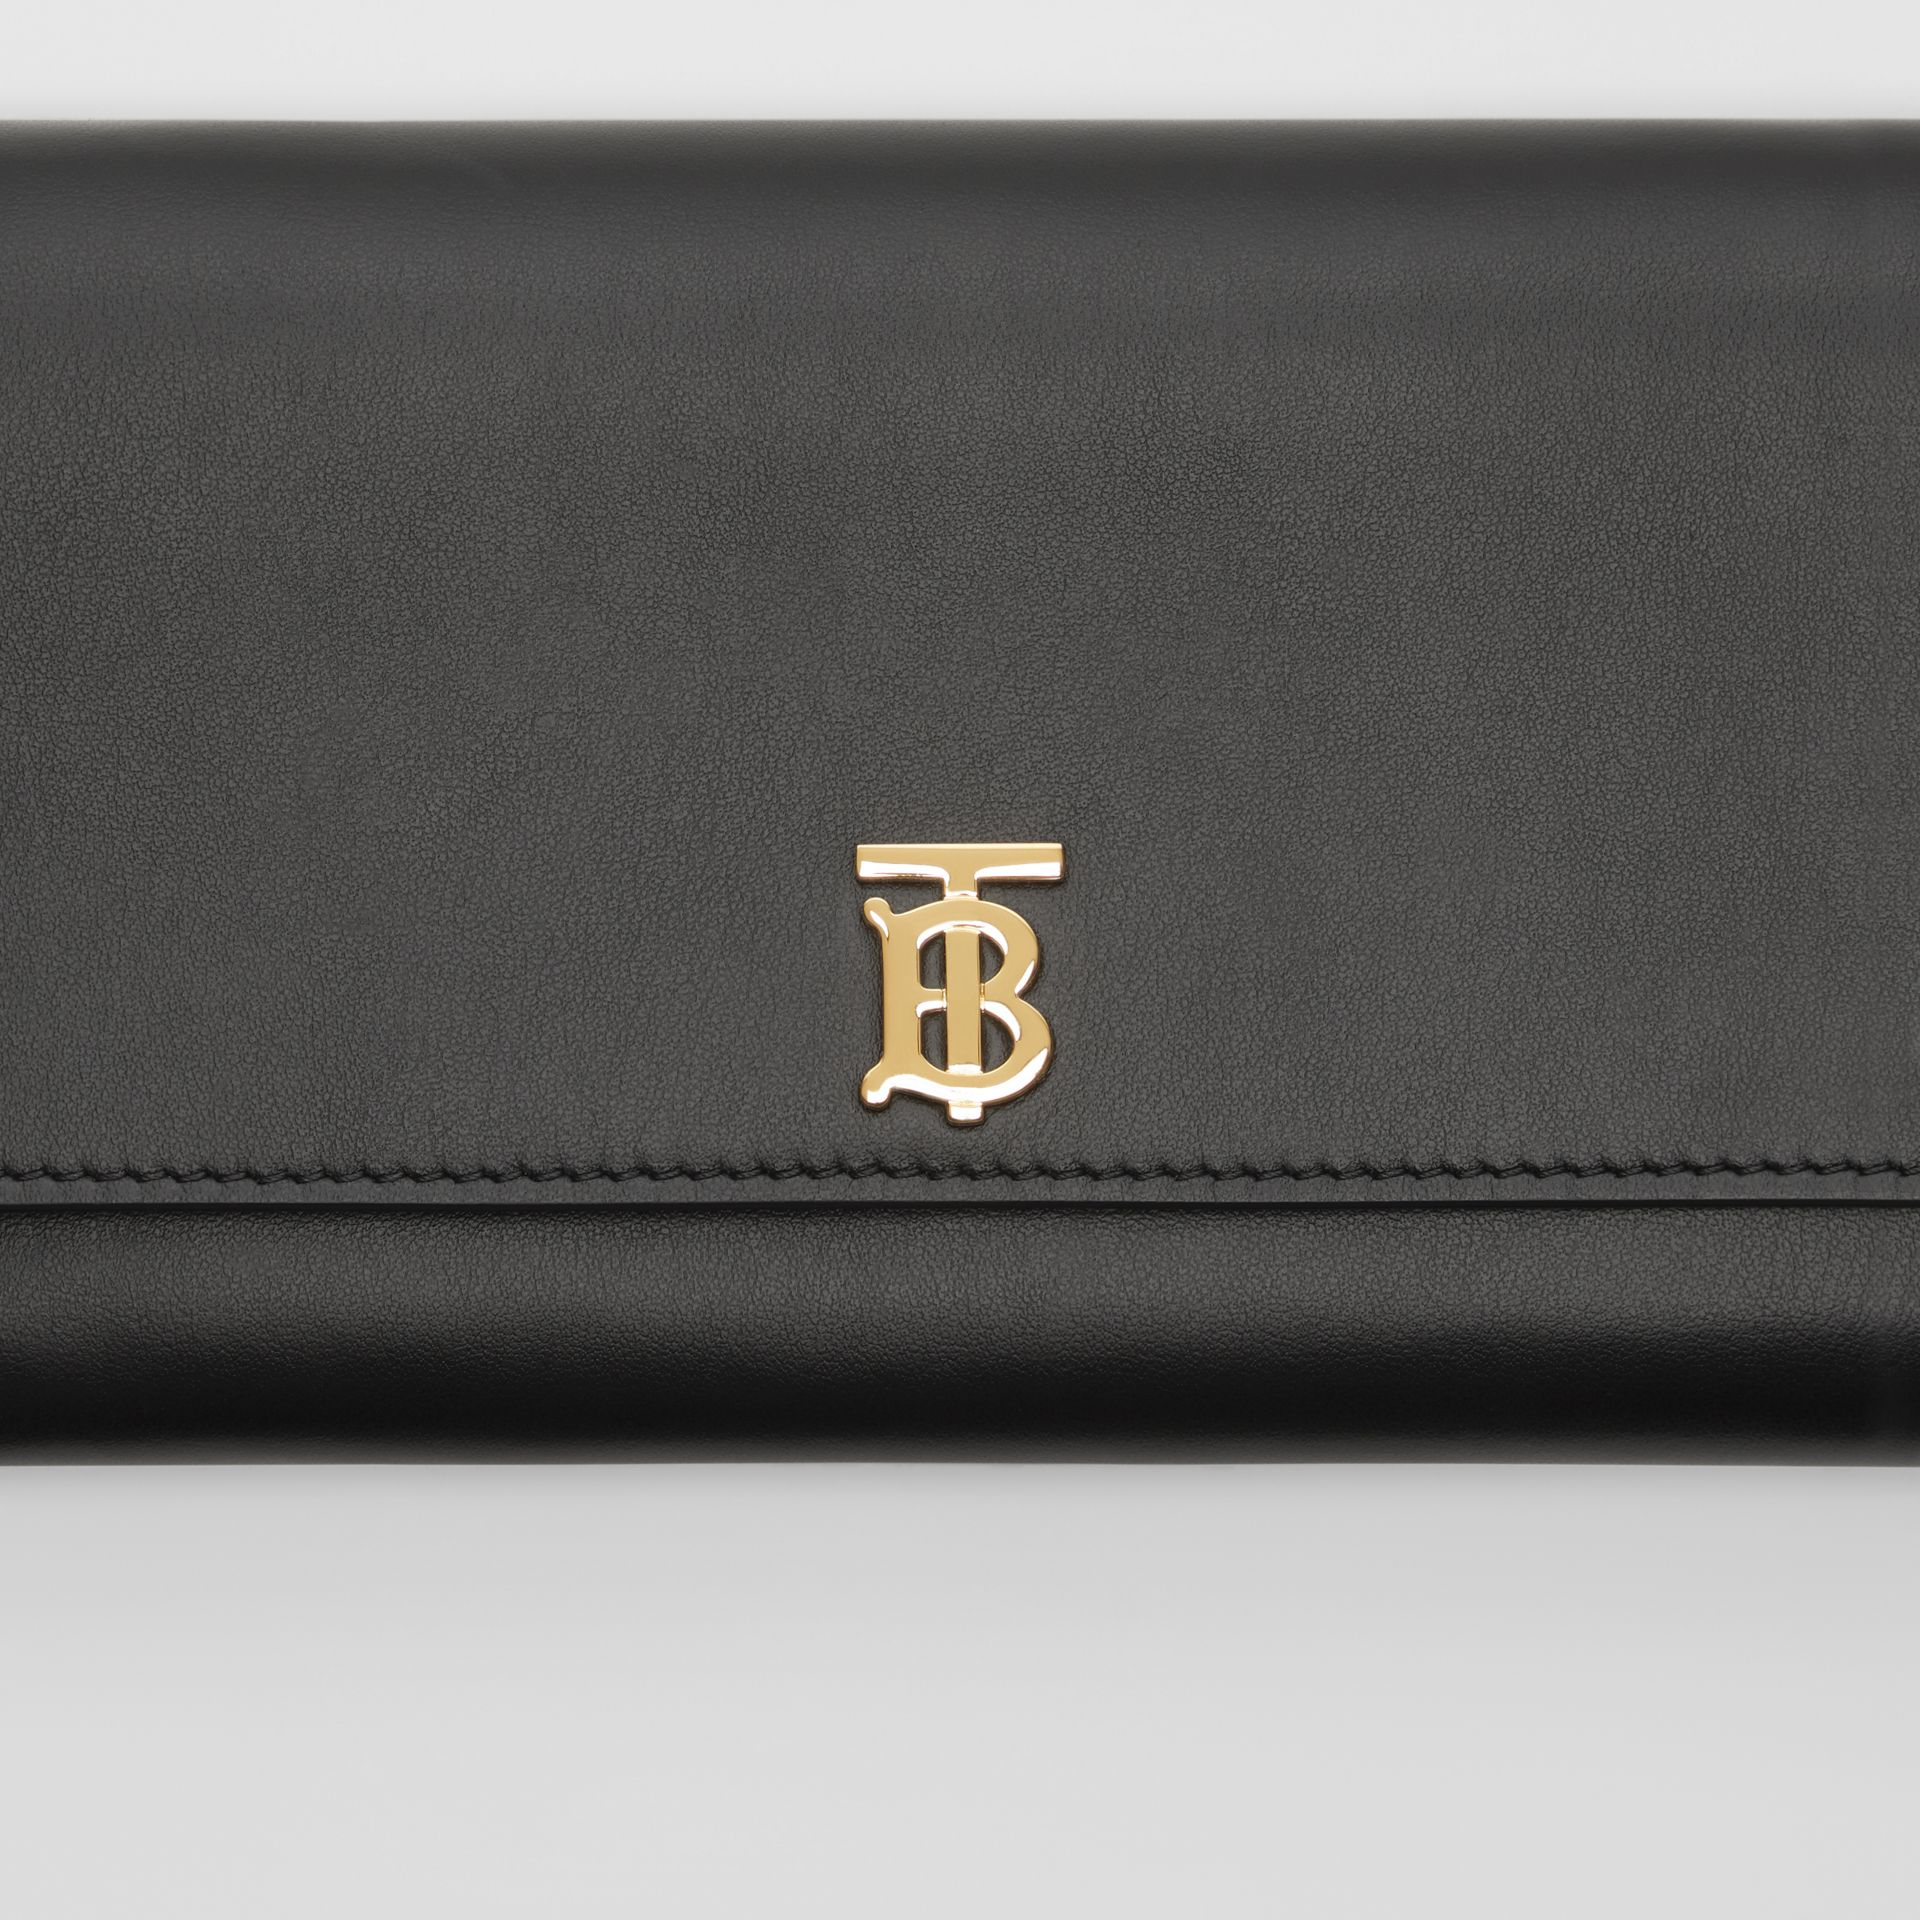 Monogram Motif Leather Wallet with Detachable Strap in Black - Women | Burberry - gallery image 1